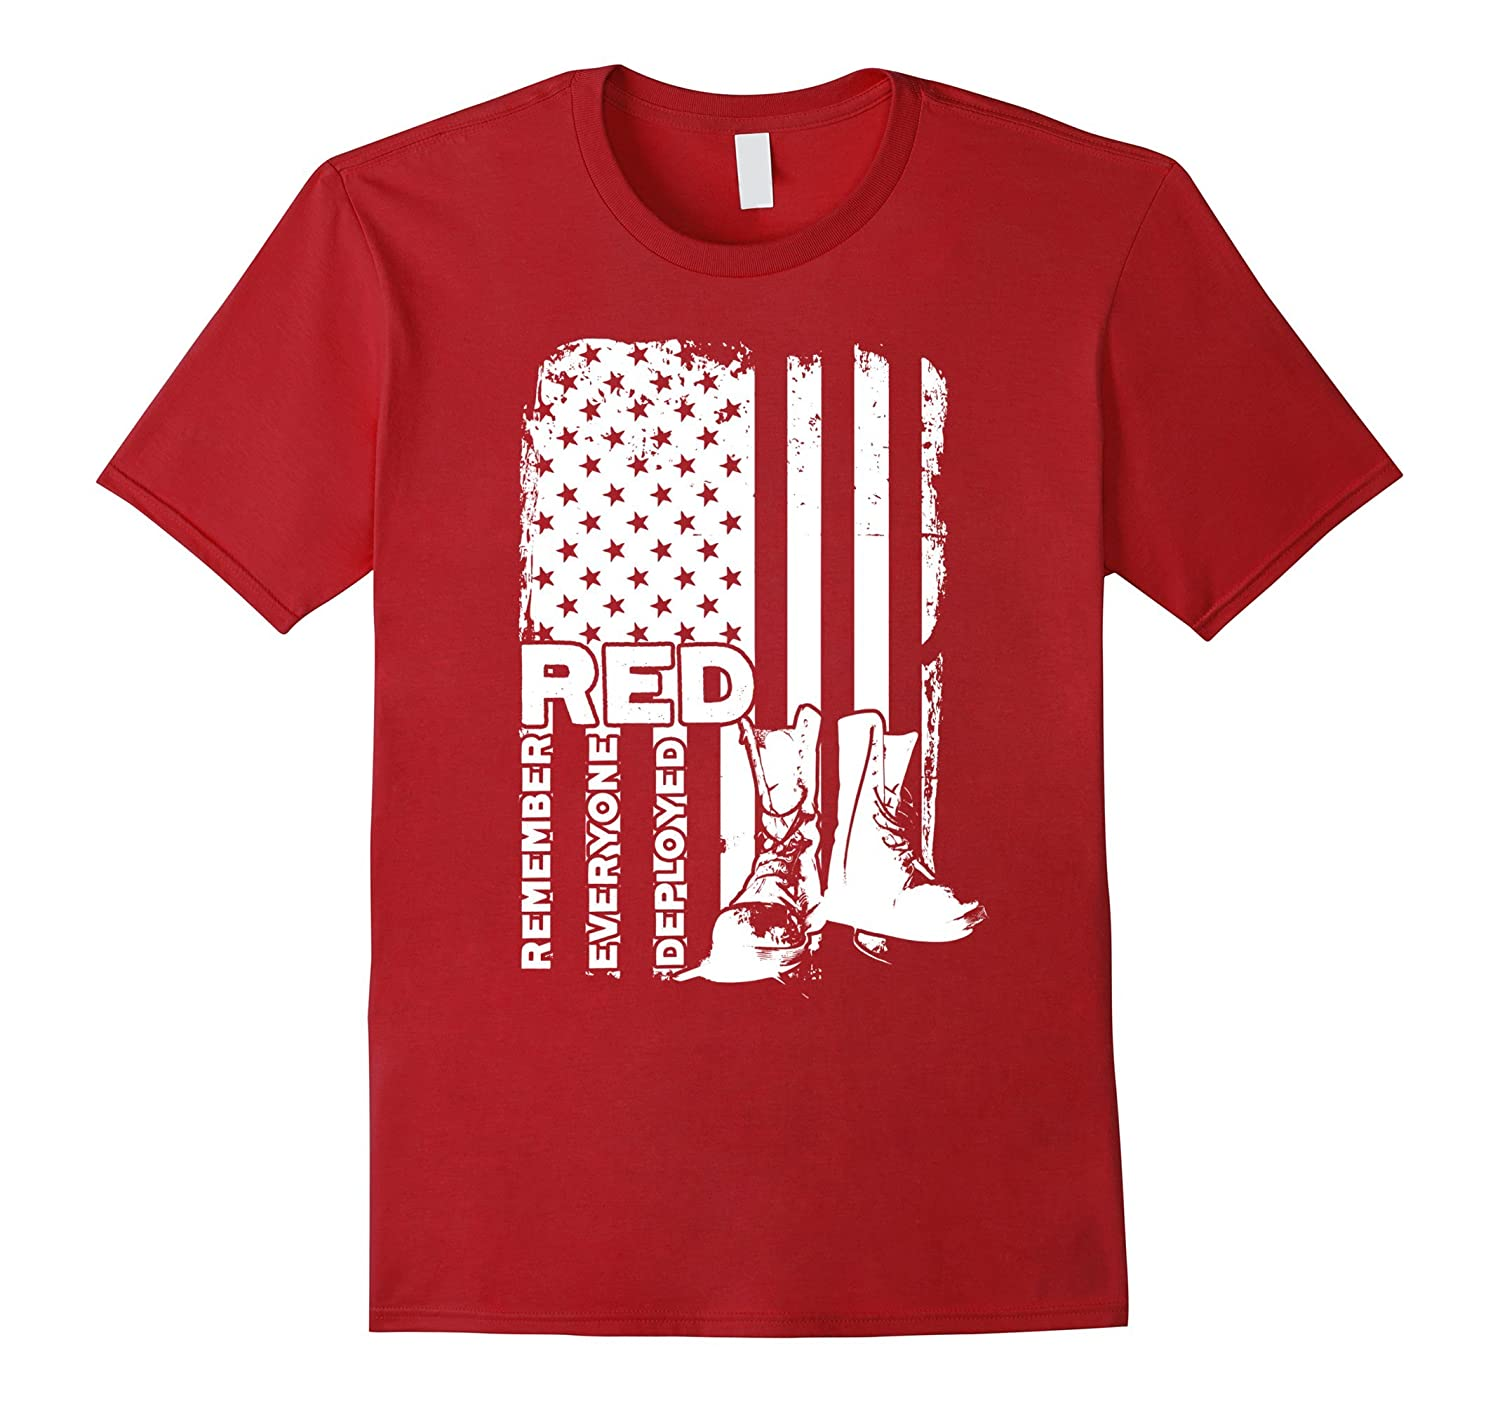 Red friday t shirts wear red friday shirt cd canditee for What to wear with a red shirt